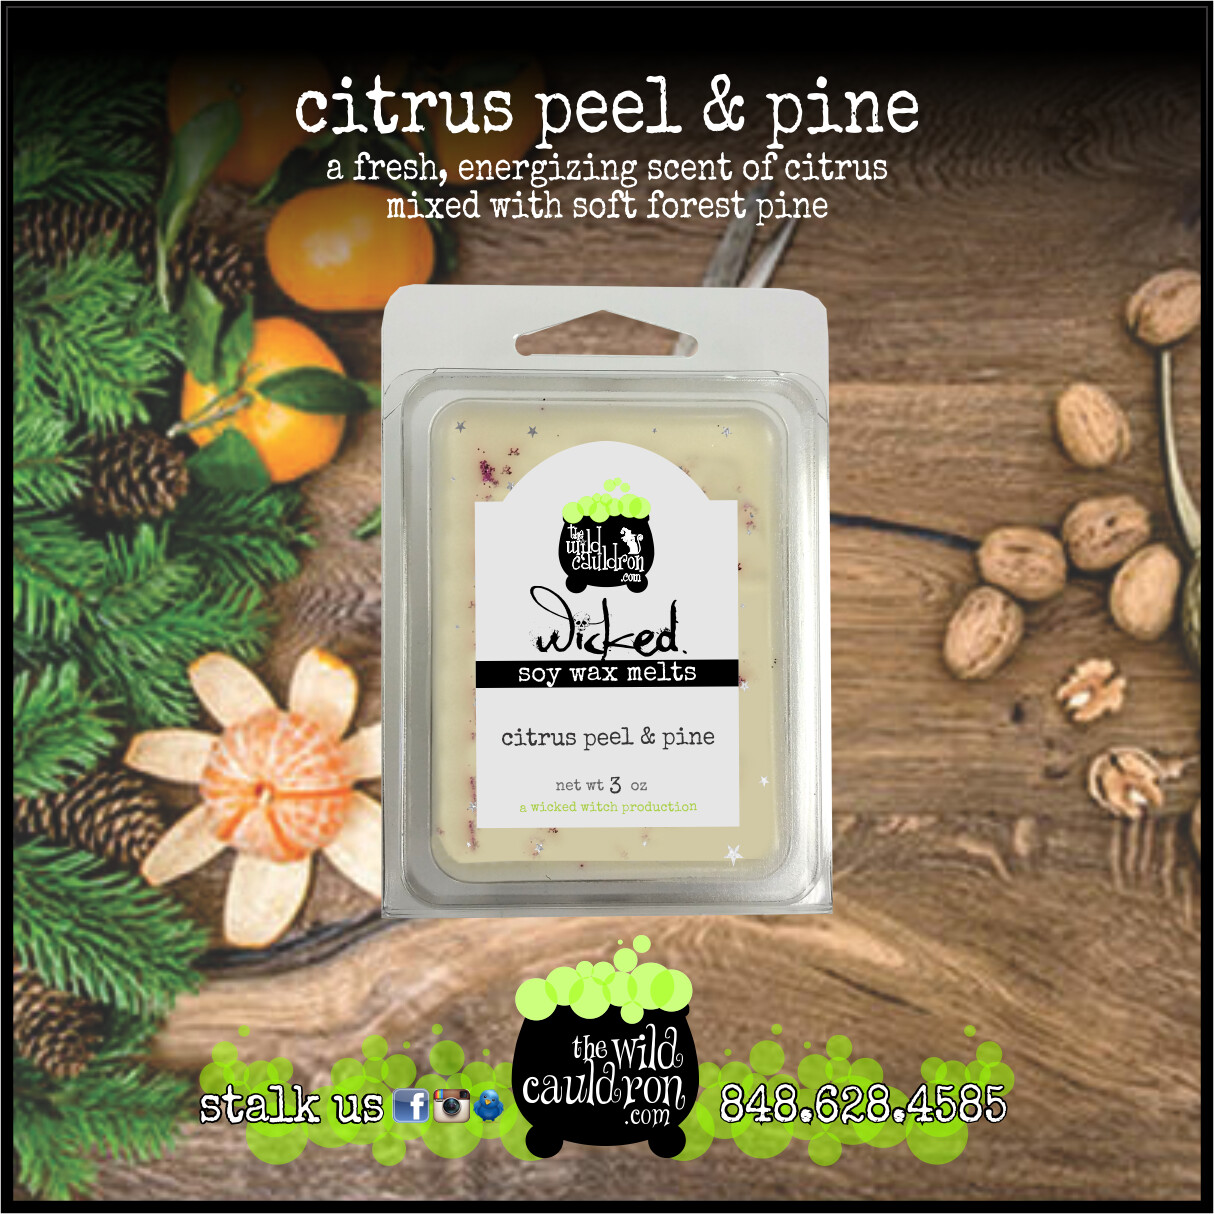 Citrus Peel and Pine Wicked Wax Melts